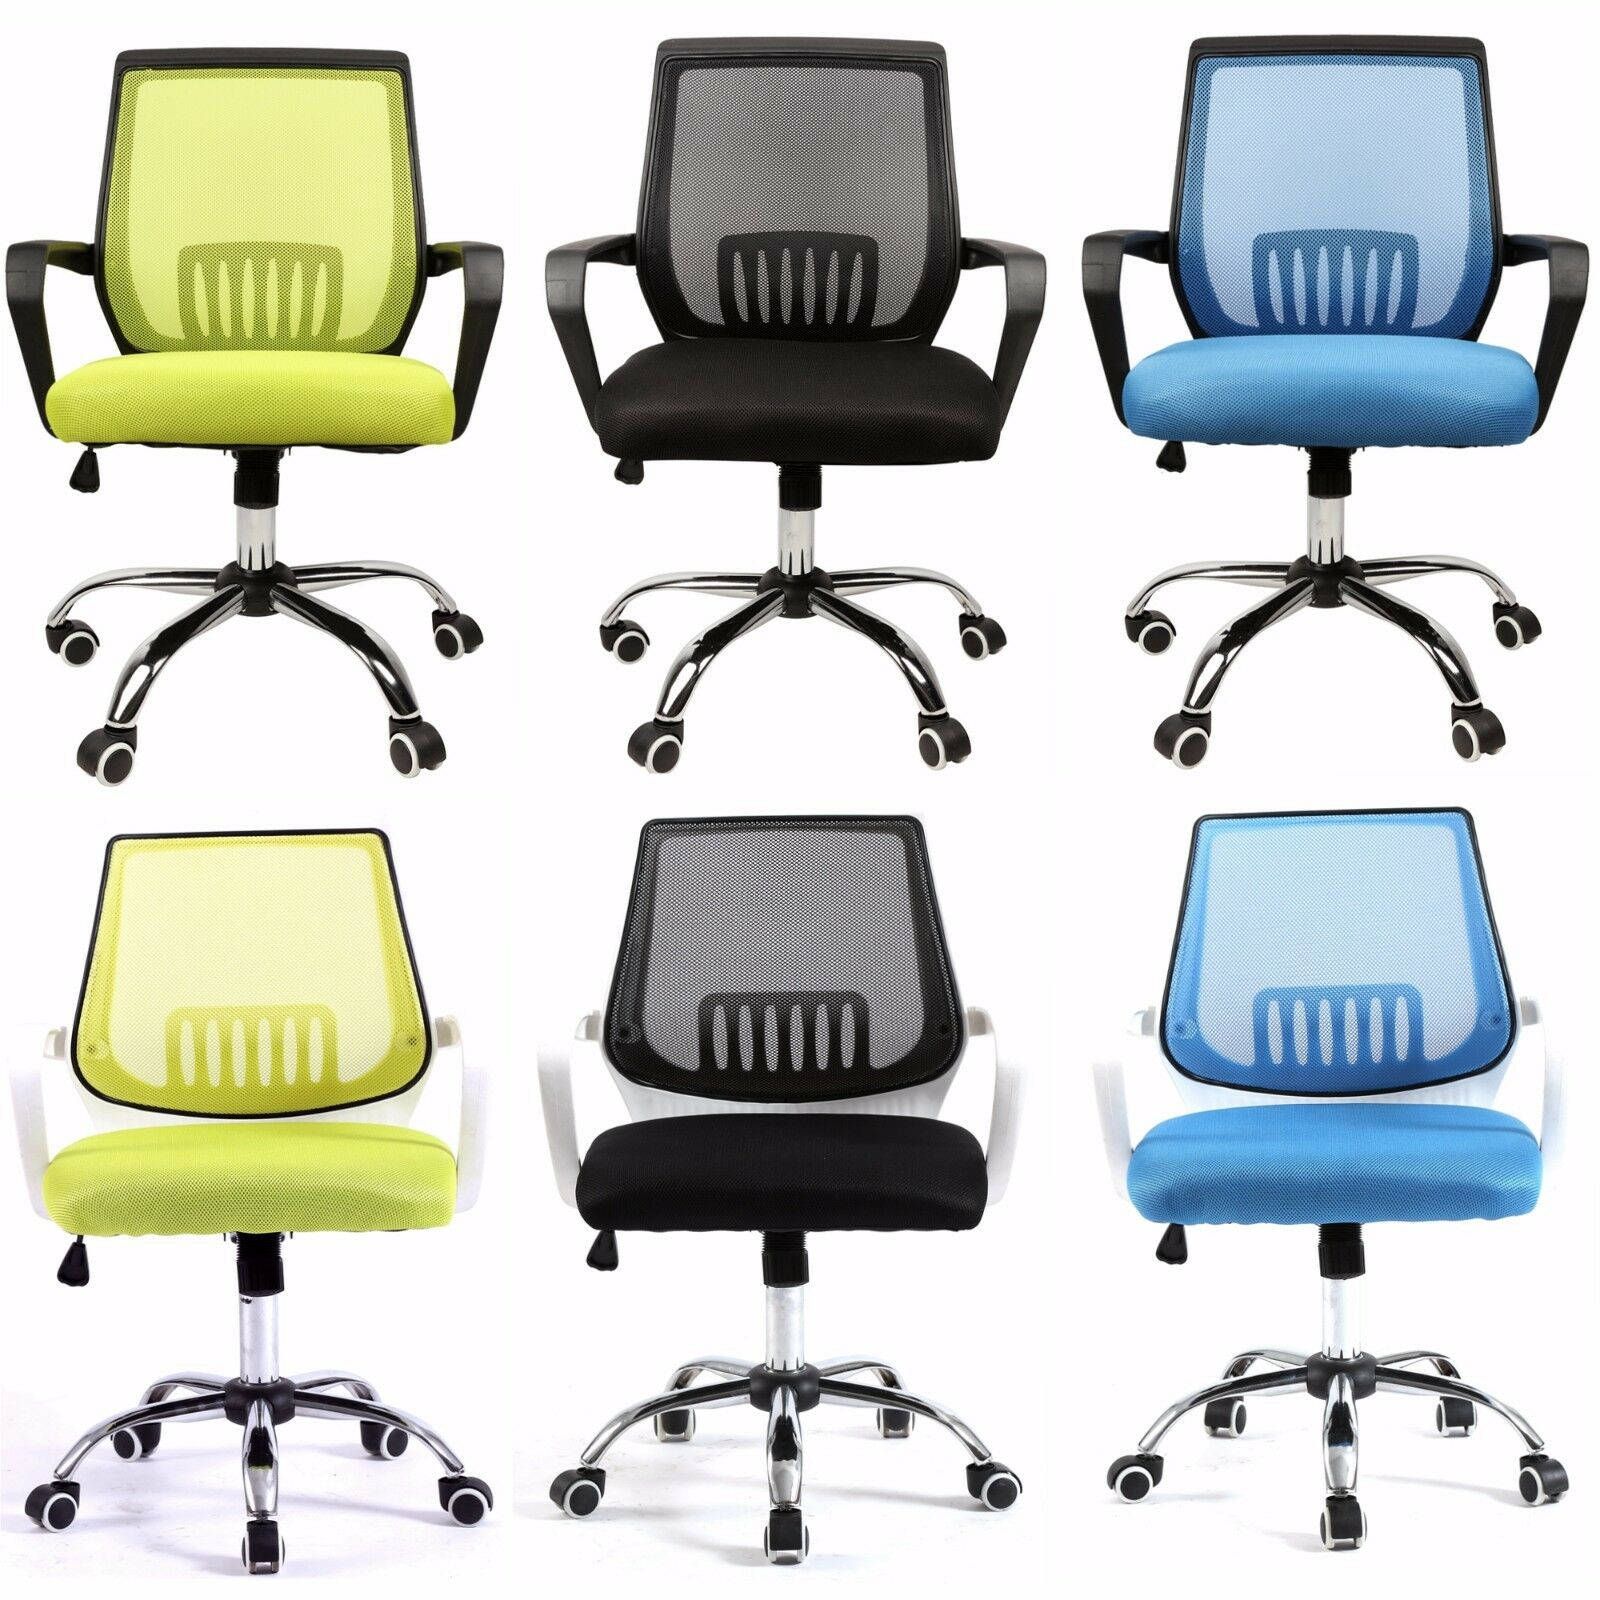 Strange Details About Modern Mid Back Mesh Drafting Computer Office Desk Chair Commercial Task Chairs Creativecarmelina Interior Chair Design Creativecarmelinacom